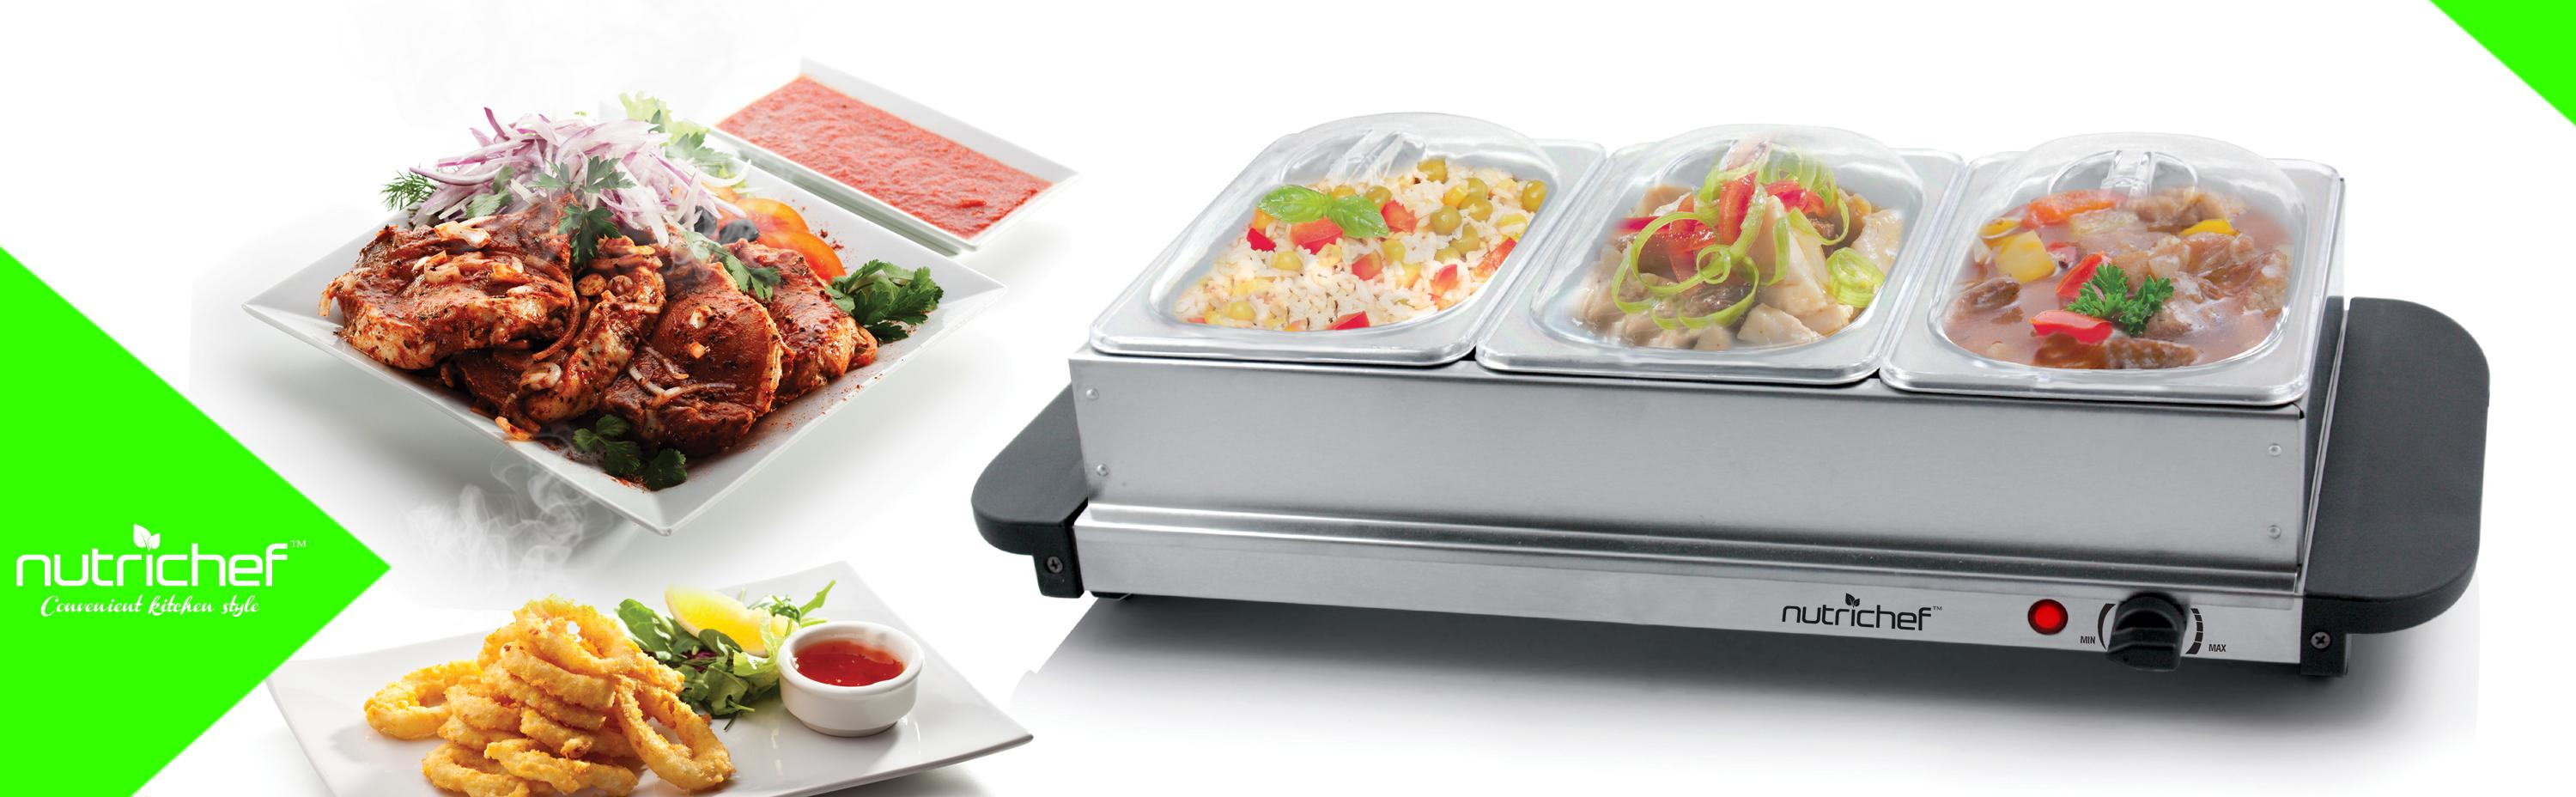 Nutrichef 3 tray buffet server hot plate for Meal outdoors